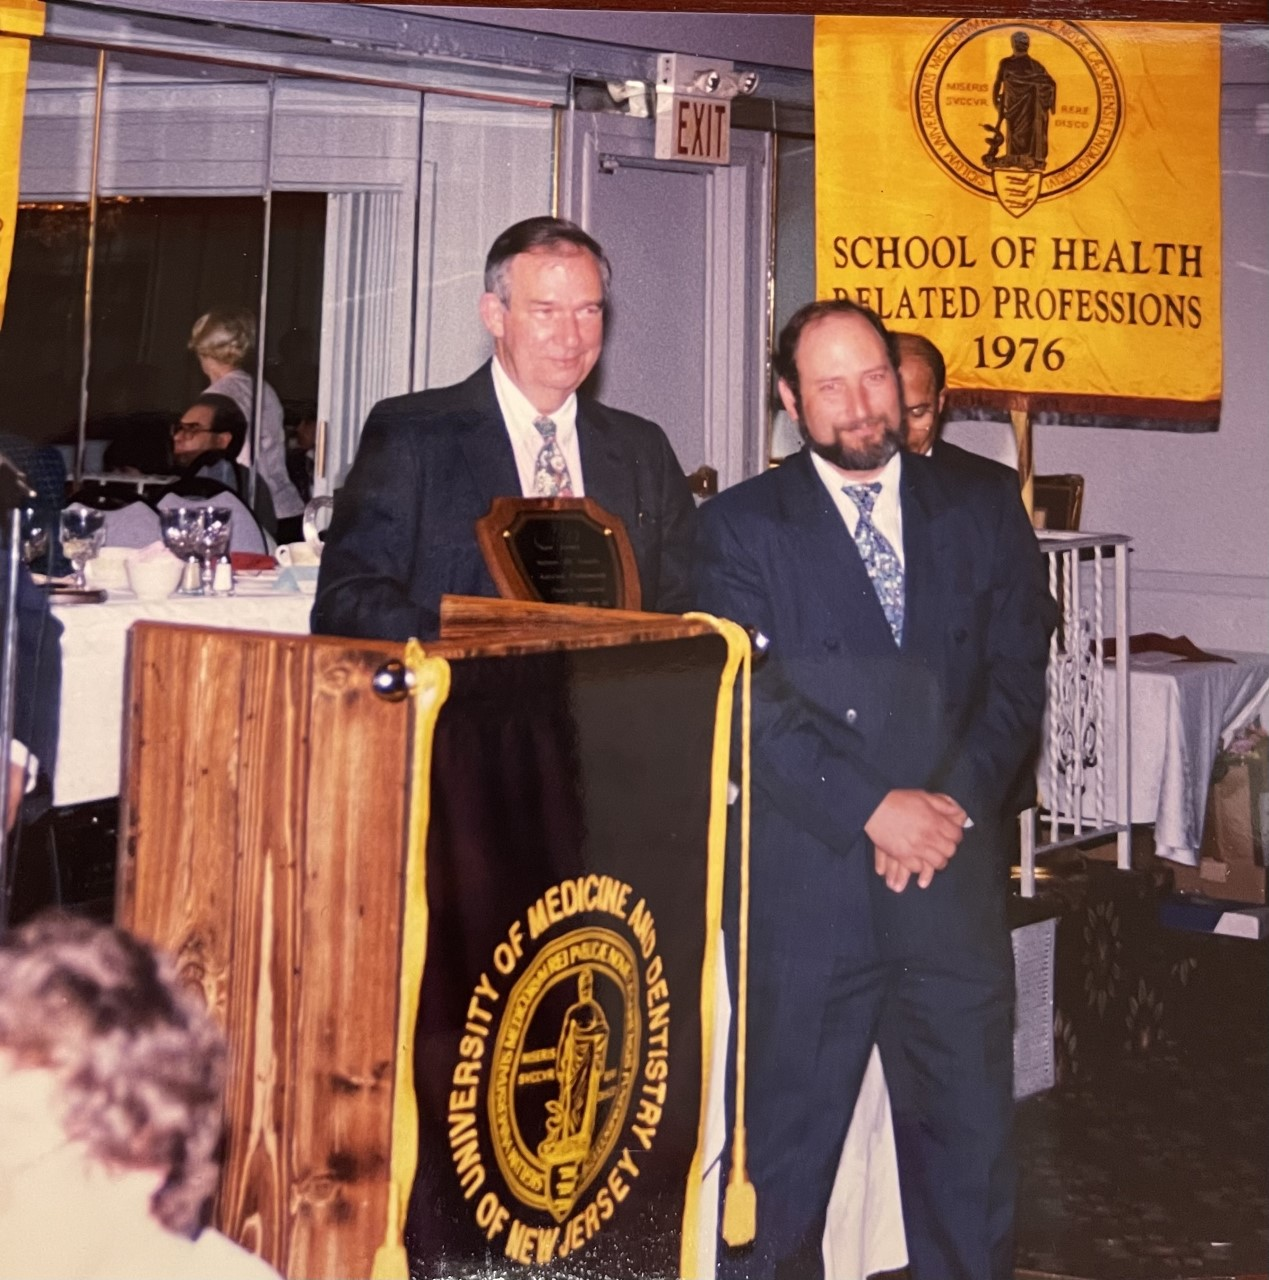 Image of Dave Gibson at a podium